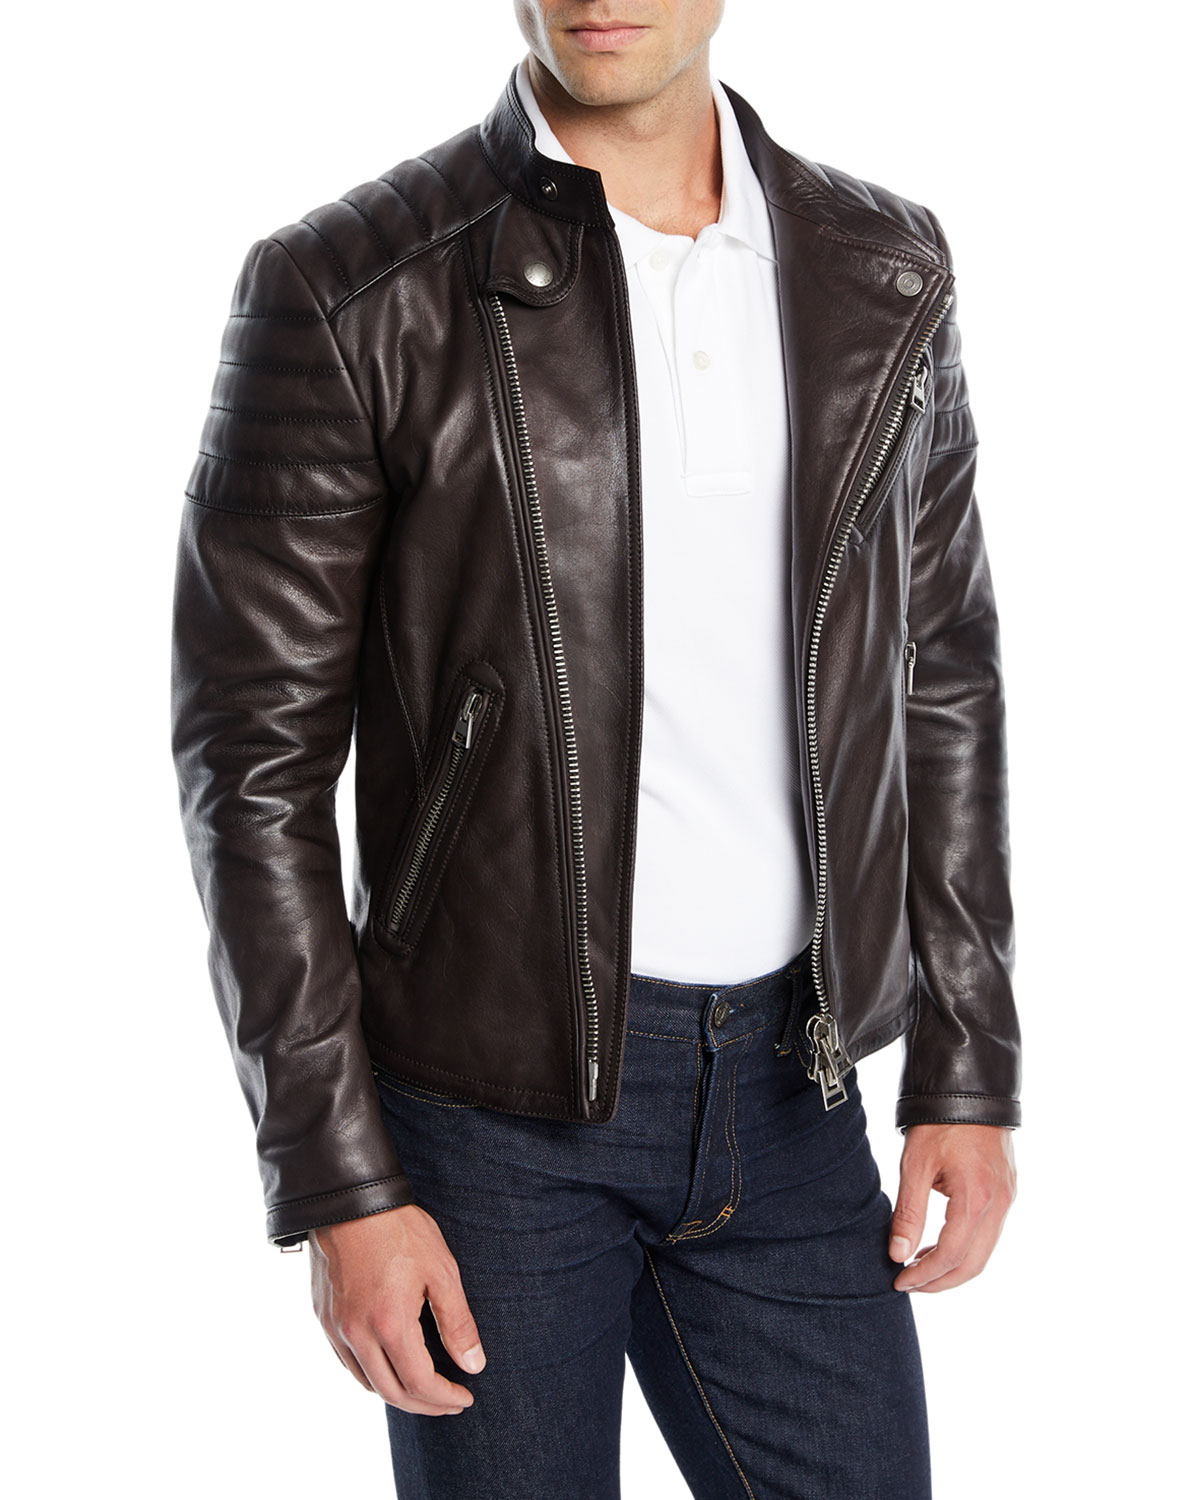 tom ford men 39 s icon leather biker jacket neiman marcus. Black Bedroom Furniture Sets. Home Design Ideas